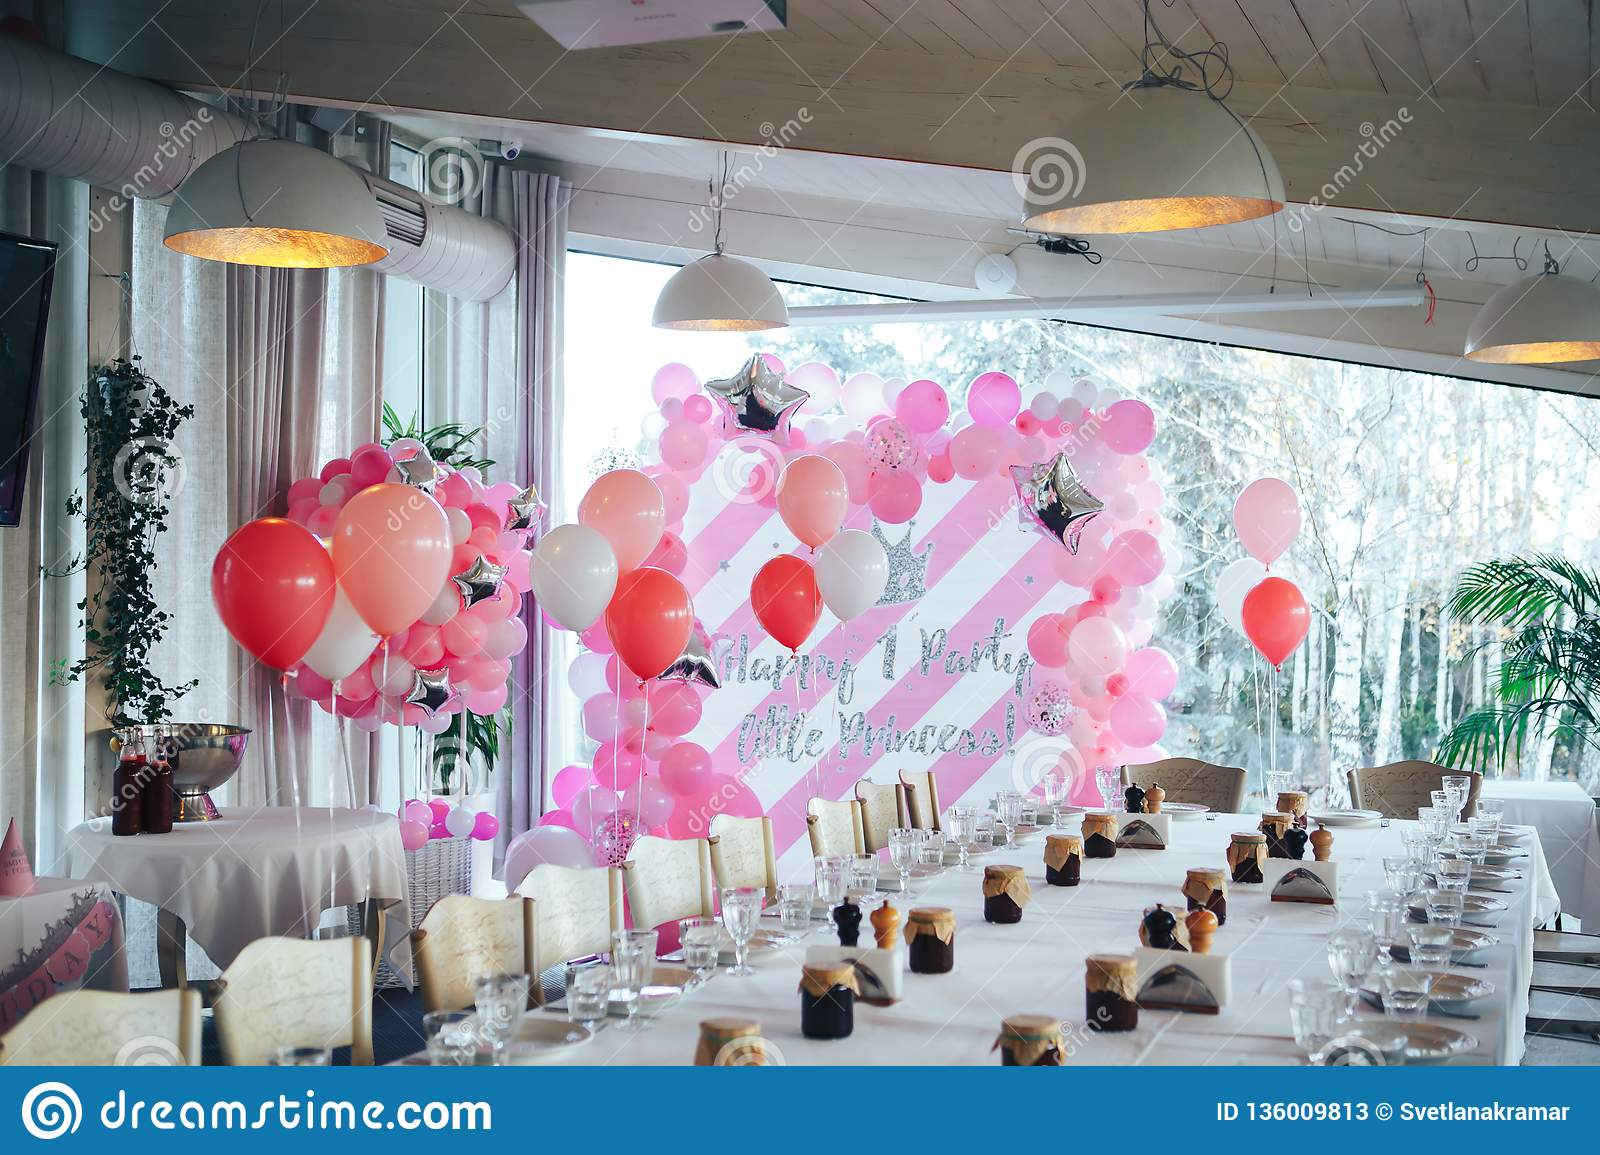 First Birthday Decorations For The In Restaurant Pink And White Balls